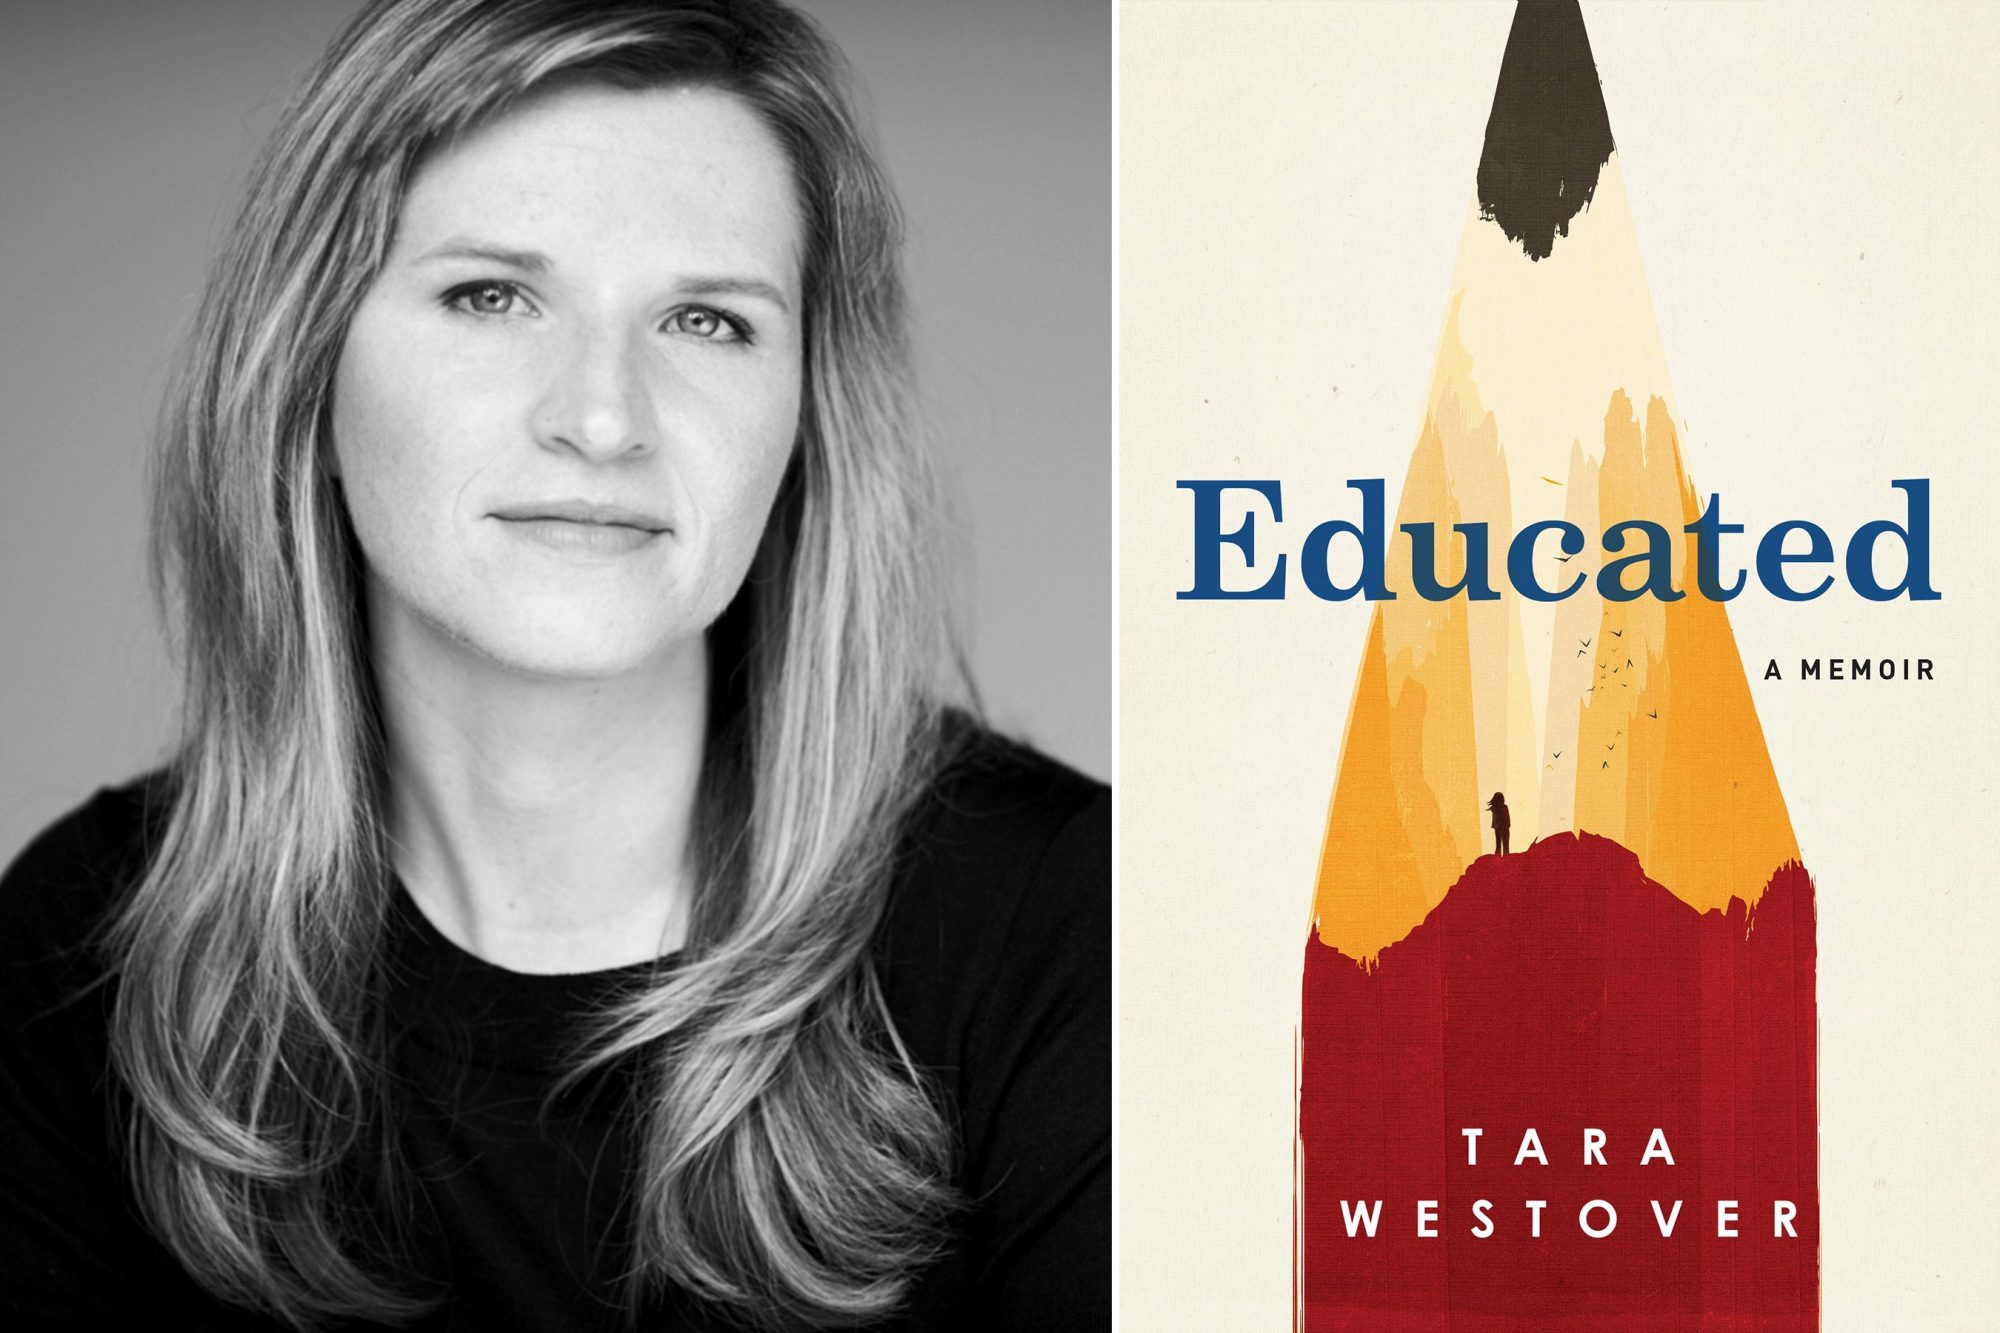 Tara Westover's 'Educated' has sold 3.5 million copies. She's ready to get her life back